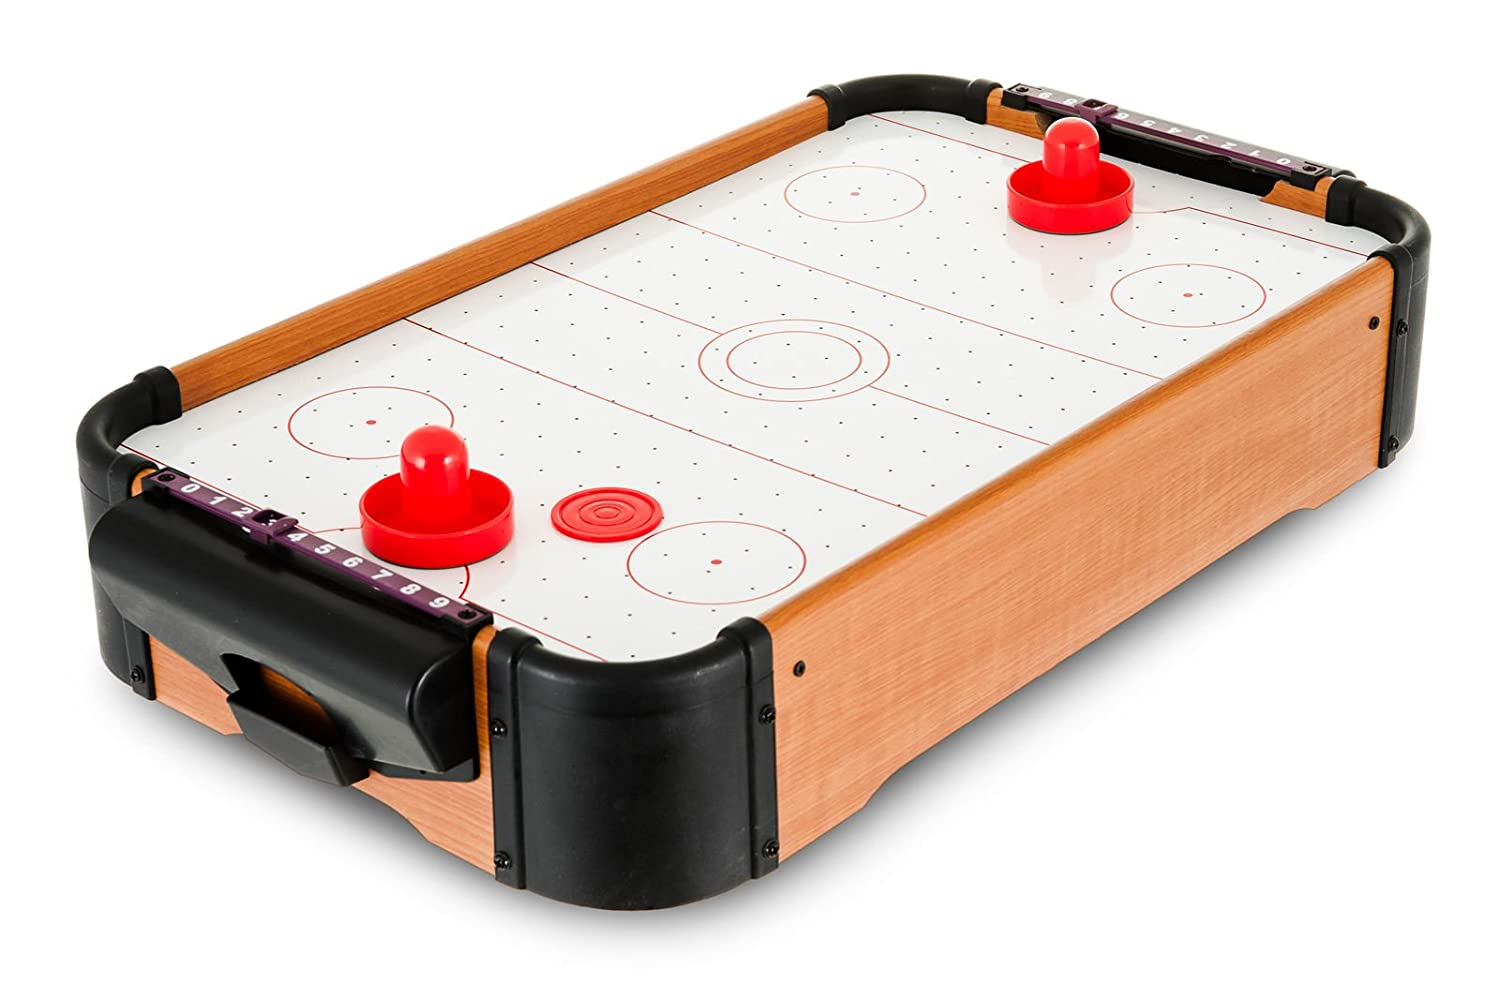 Fineway. Air Hockey Table top Playing Arcade Game Indoor Outdoor Family Fun Time – Ideal for Kids Adults – Battery Operated Blower – Best Christmas Birthday Gift